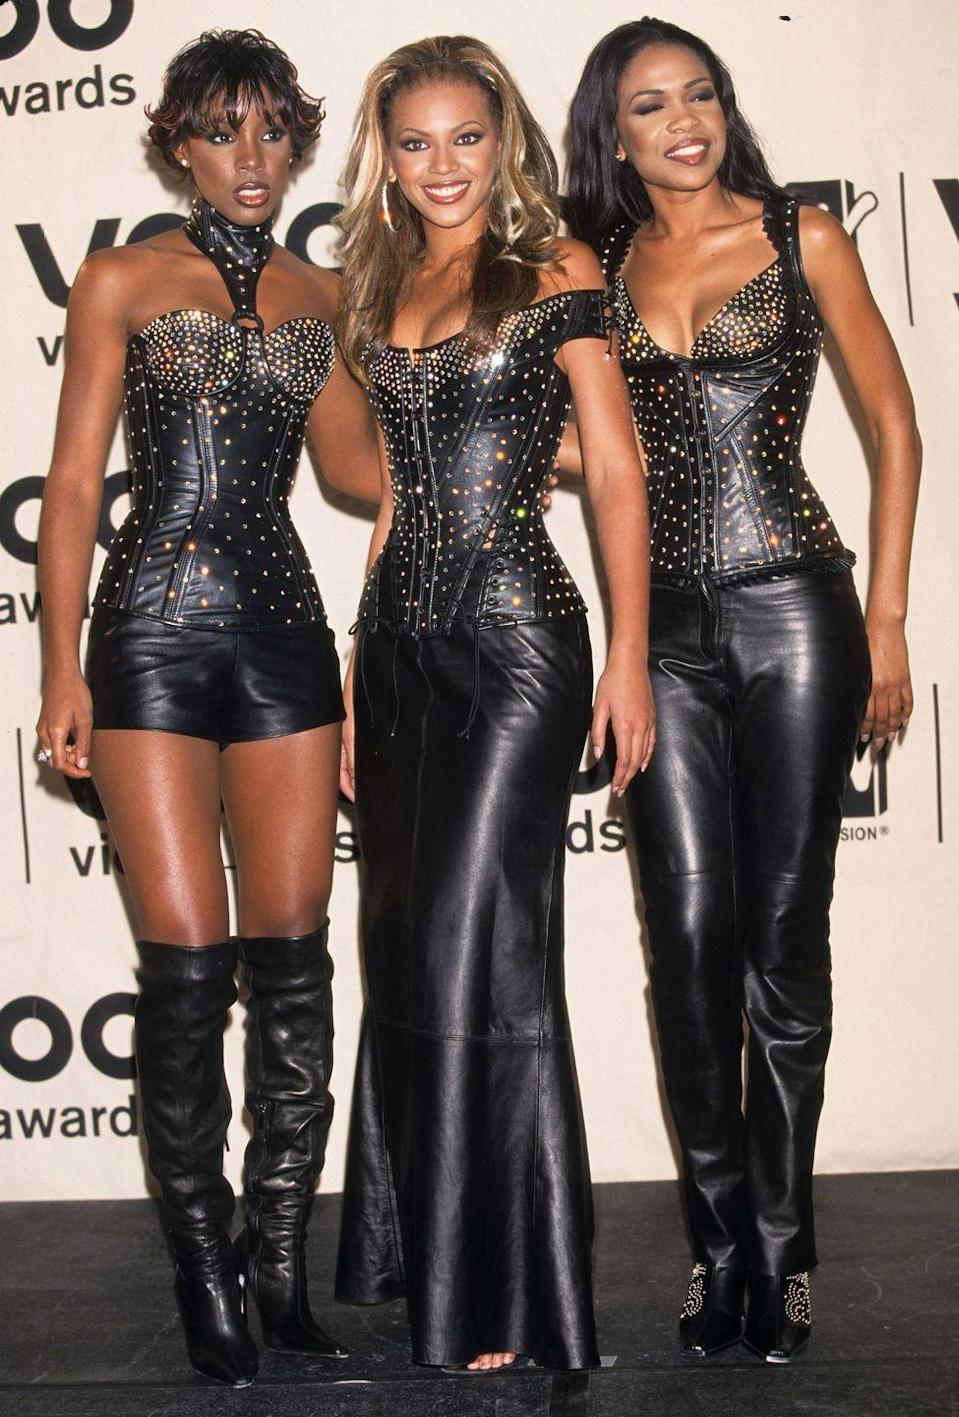 <p>The three-person group matched in leather rhinestone bodices and coordinating bottoms at the 2000 VMAs red carpet.</p>